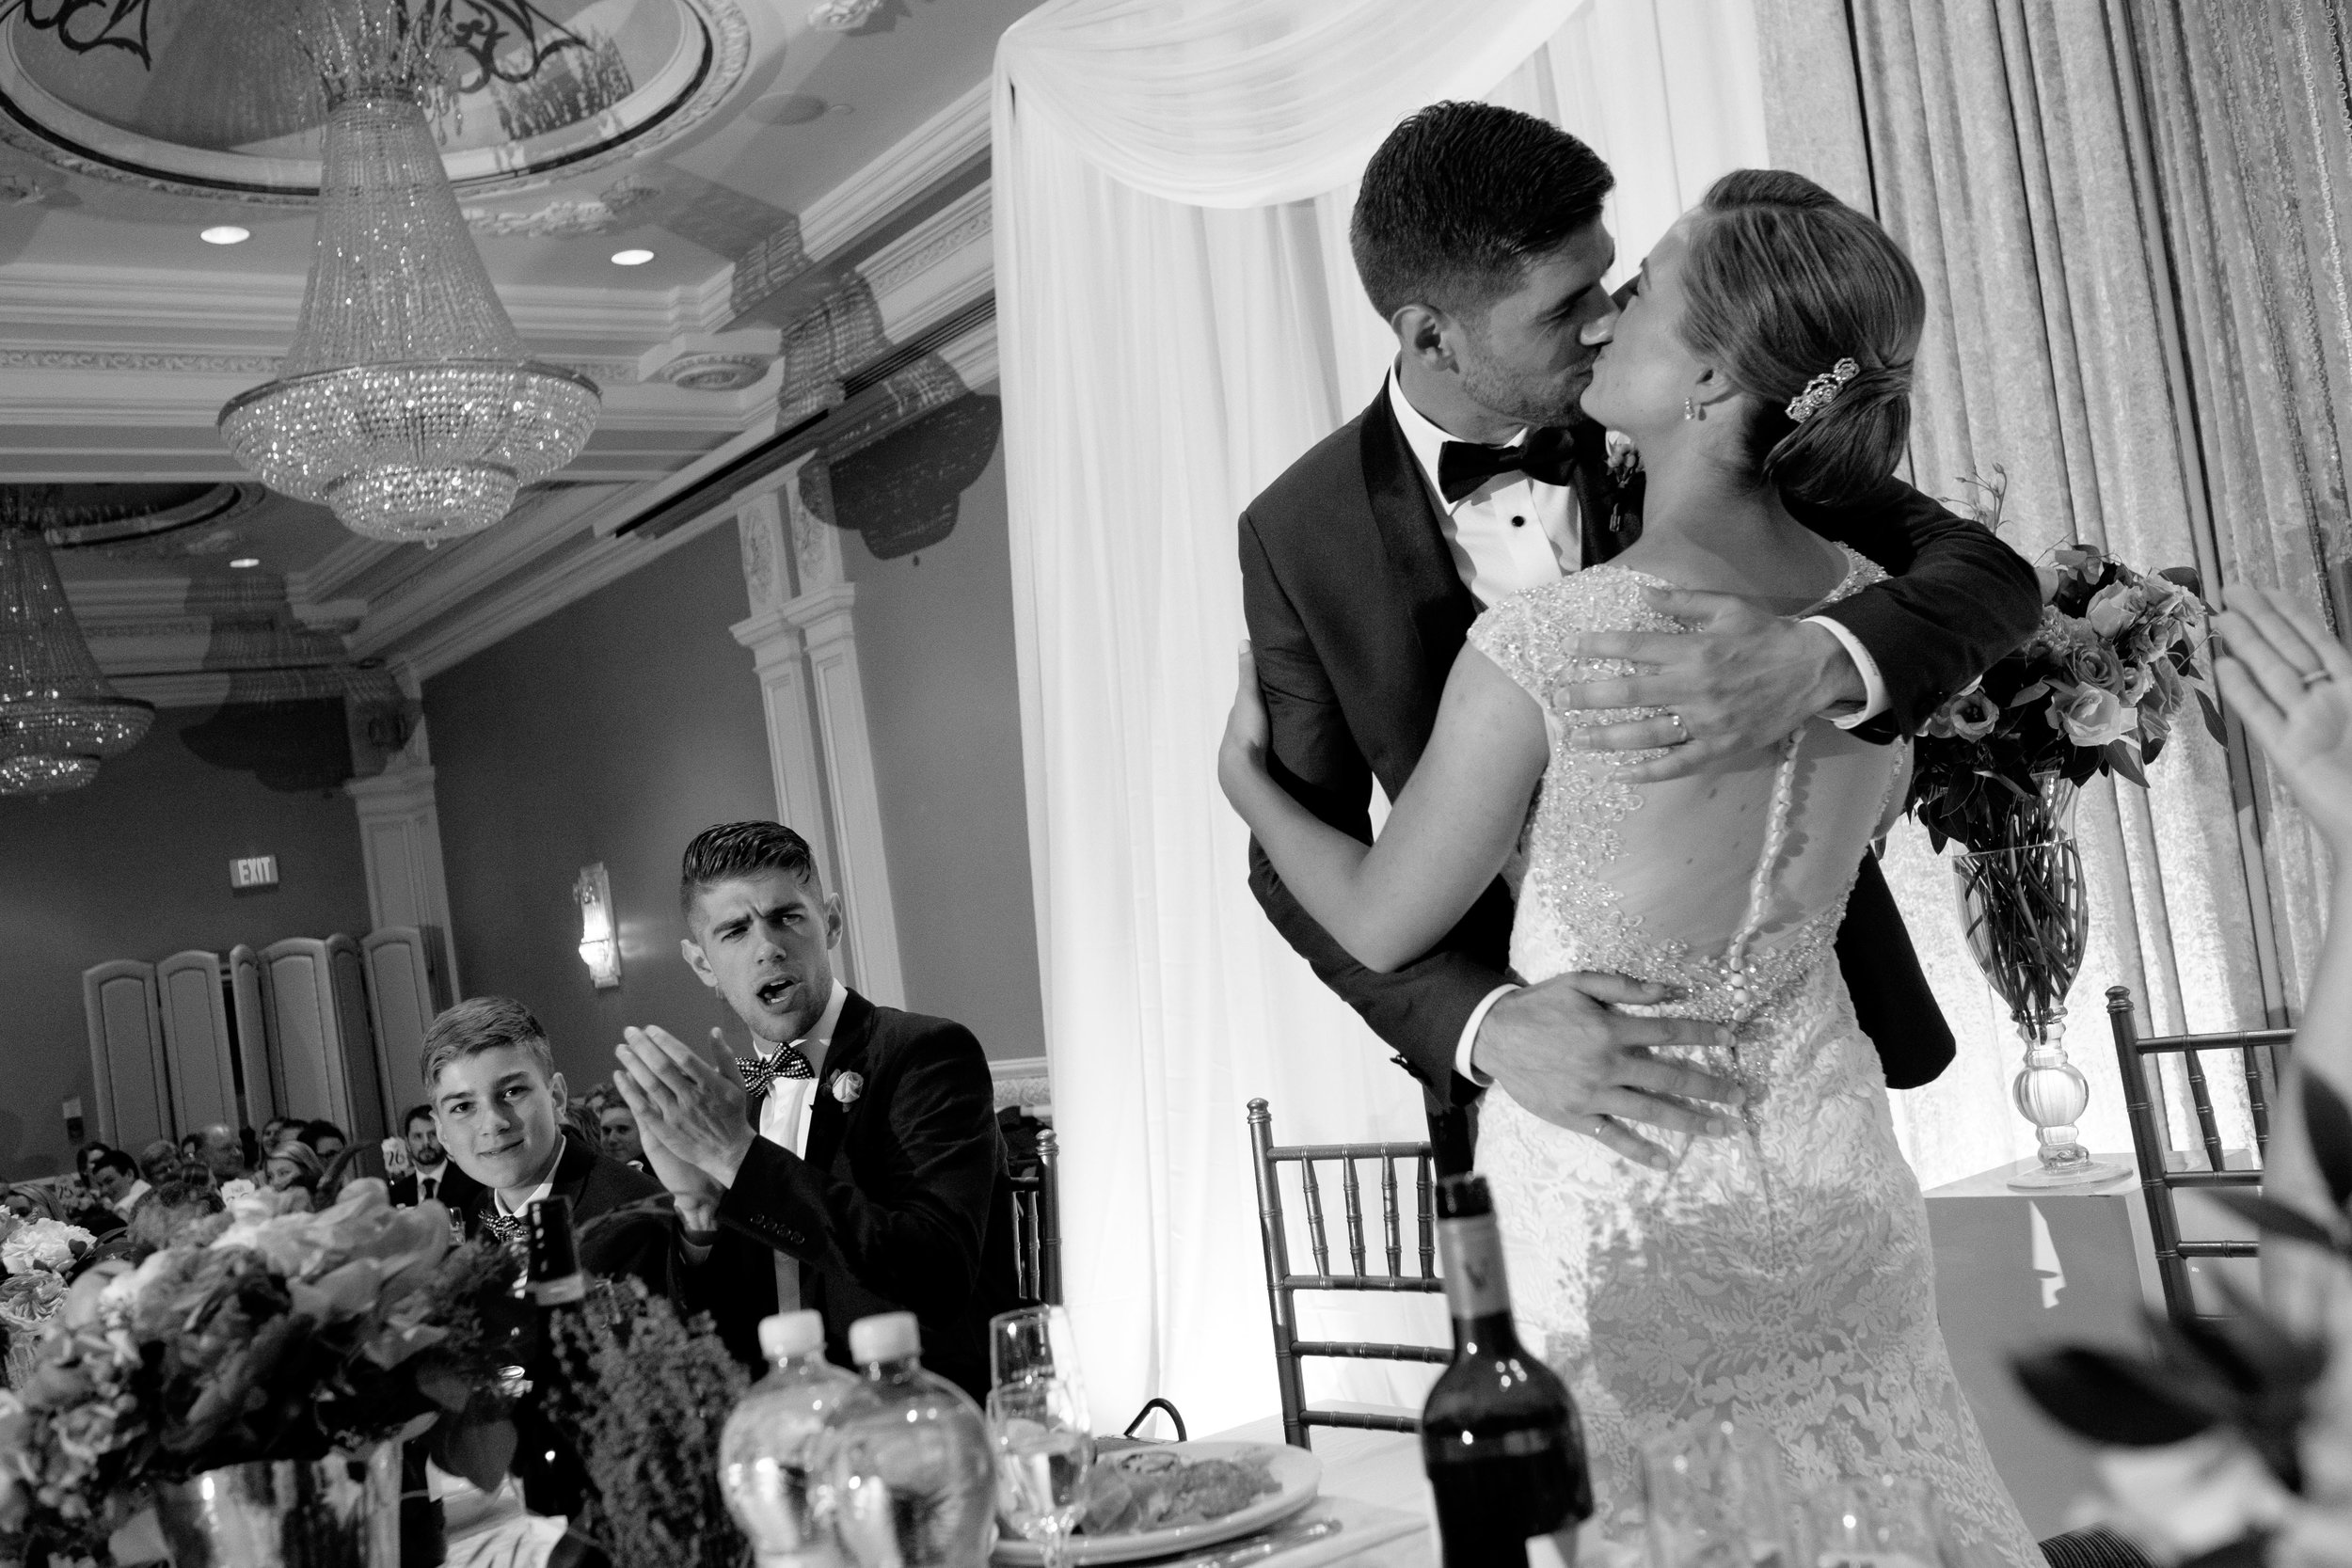 Sabrina and Zach share a kiss during their wedding reception at the Jewel Event Centre in Toronto.